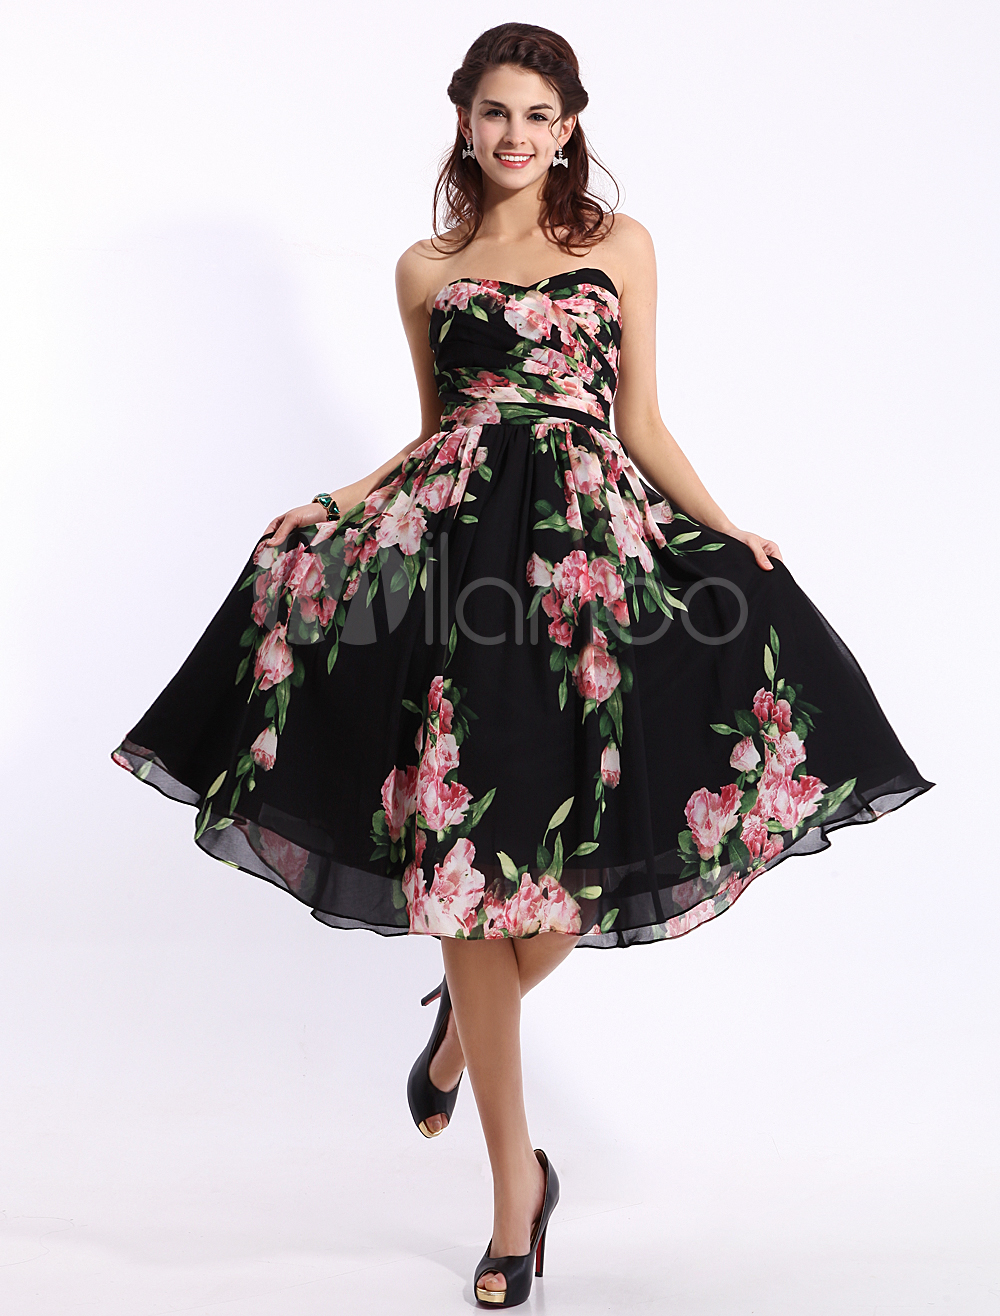 ddbbabdc363 Black Floral Print Dress In Knee Length Inspired by Ariana Grande at the Grammys  2014